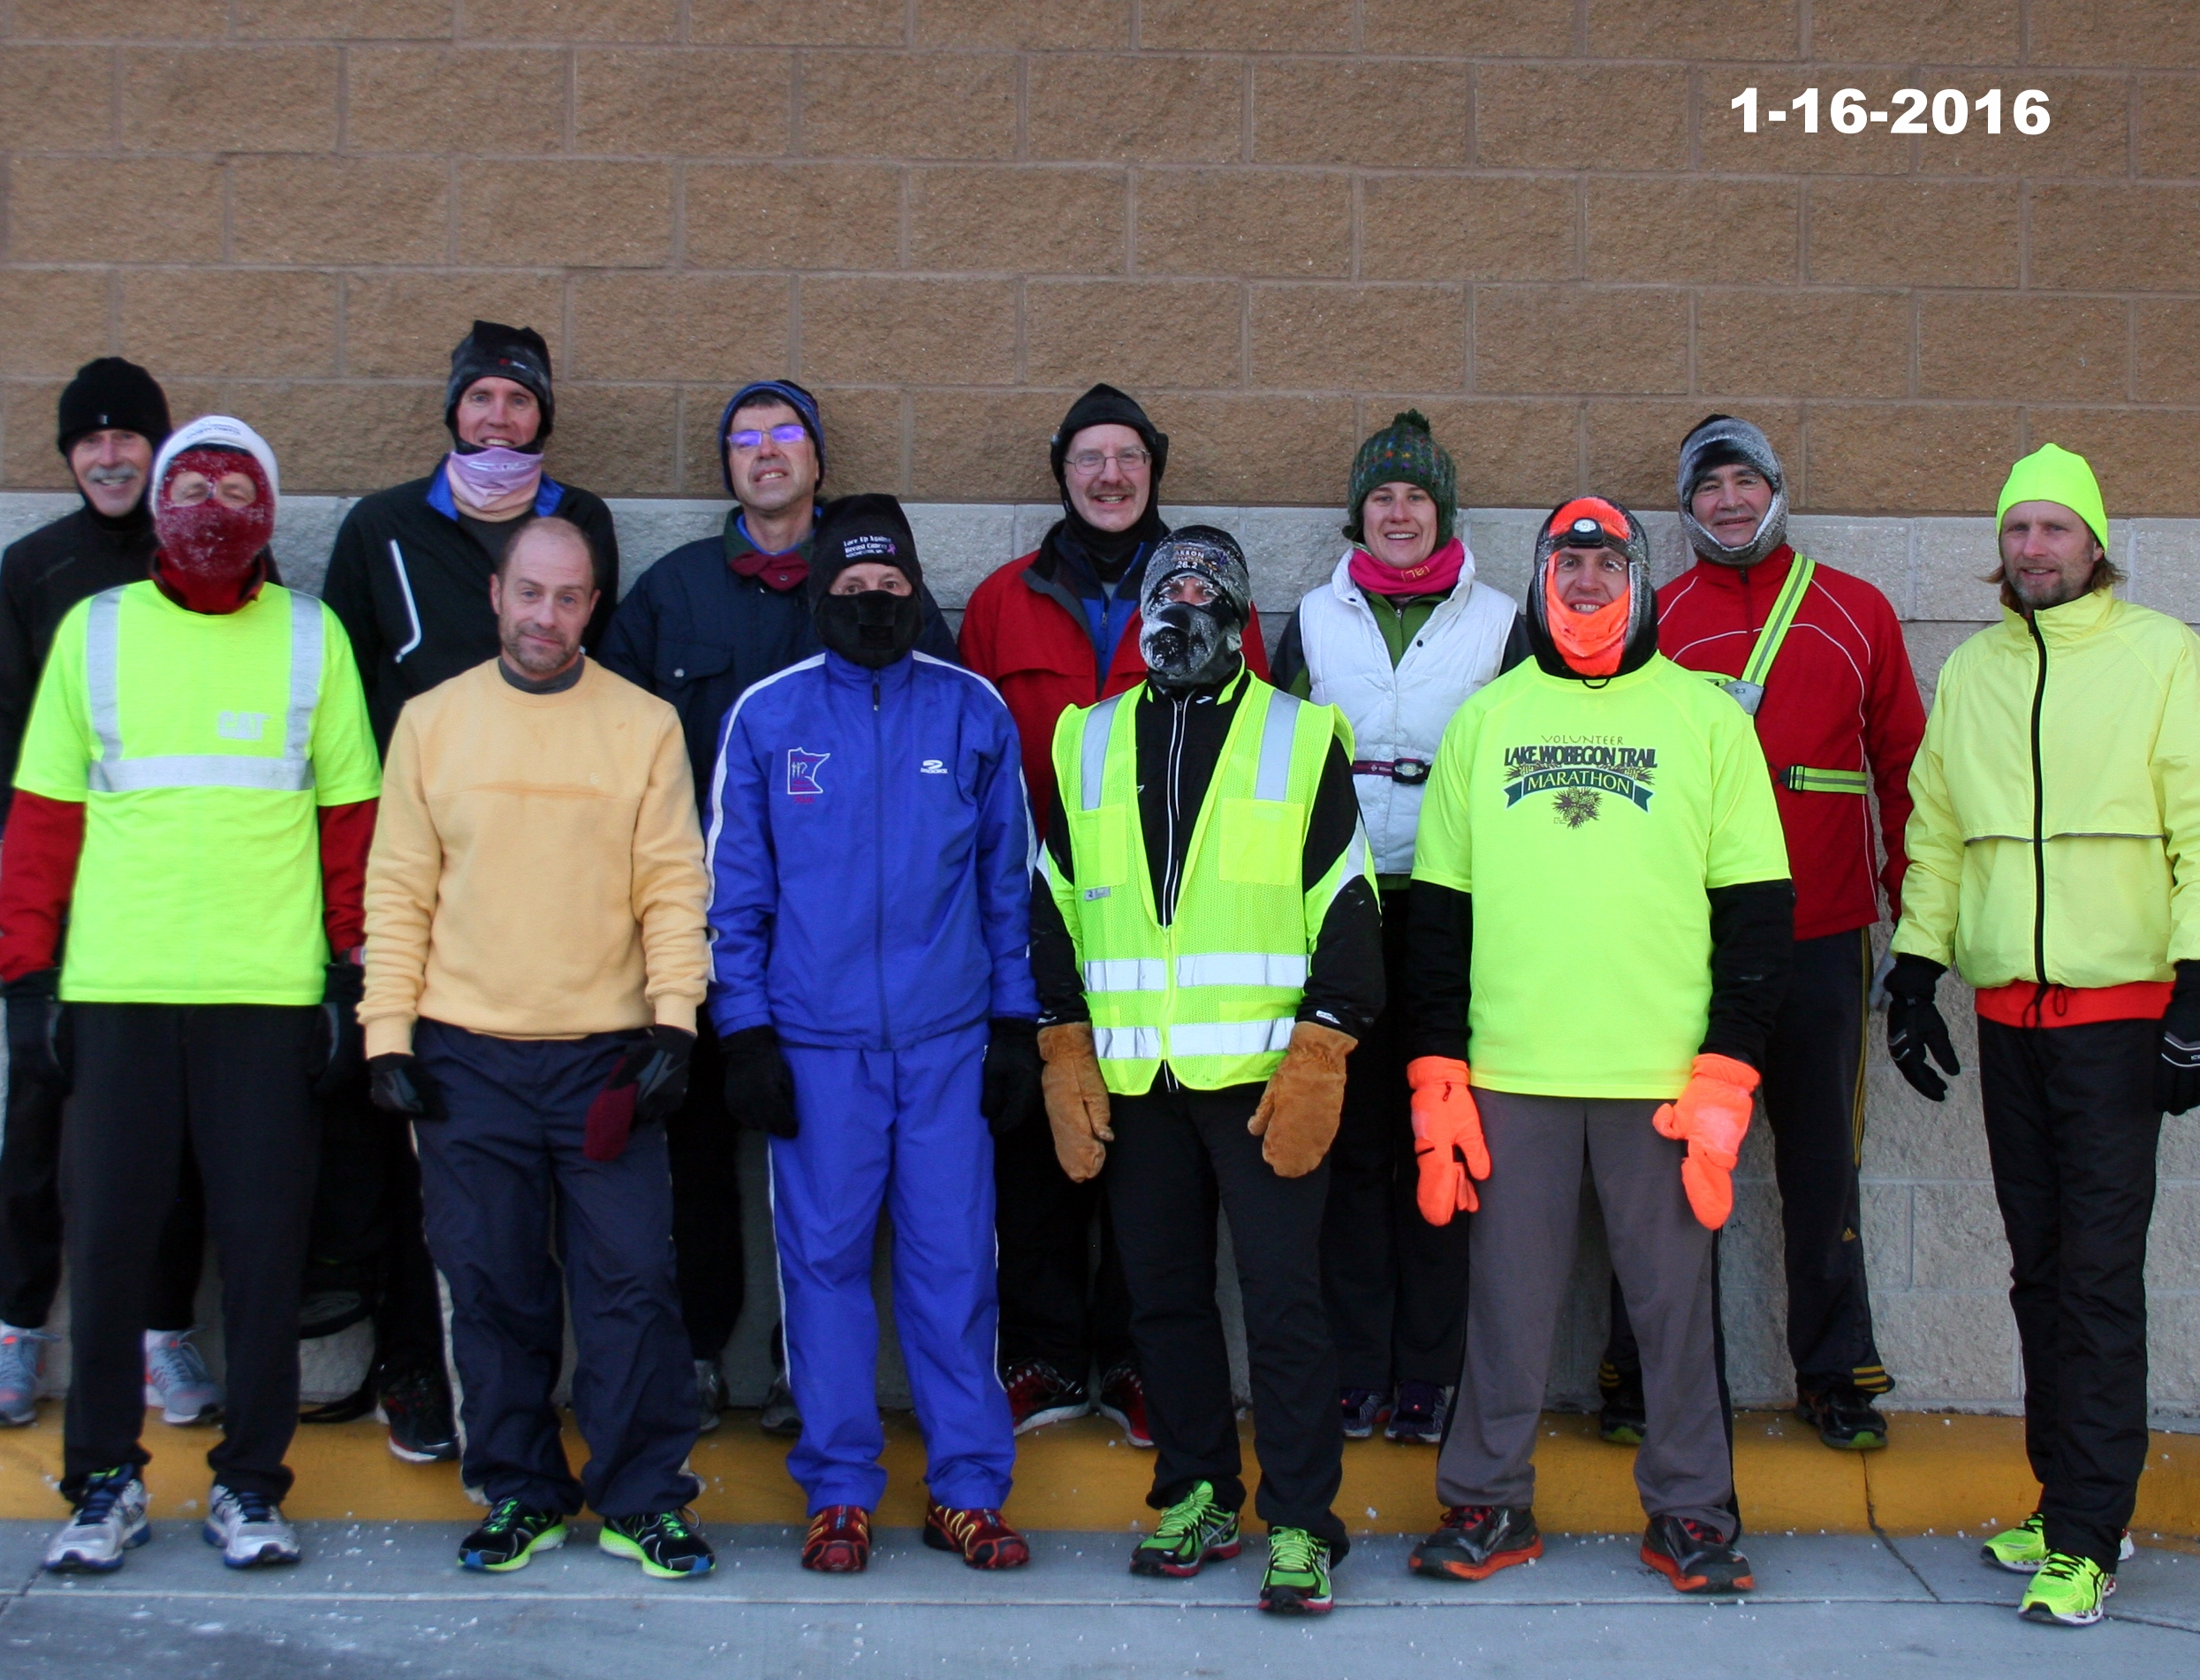 Breakfast Run 1-16-2016